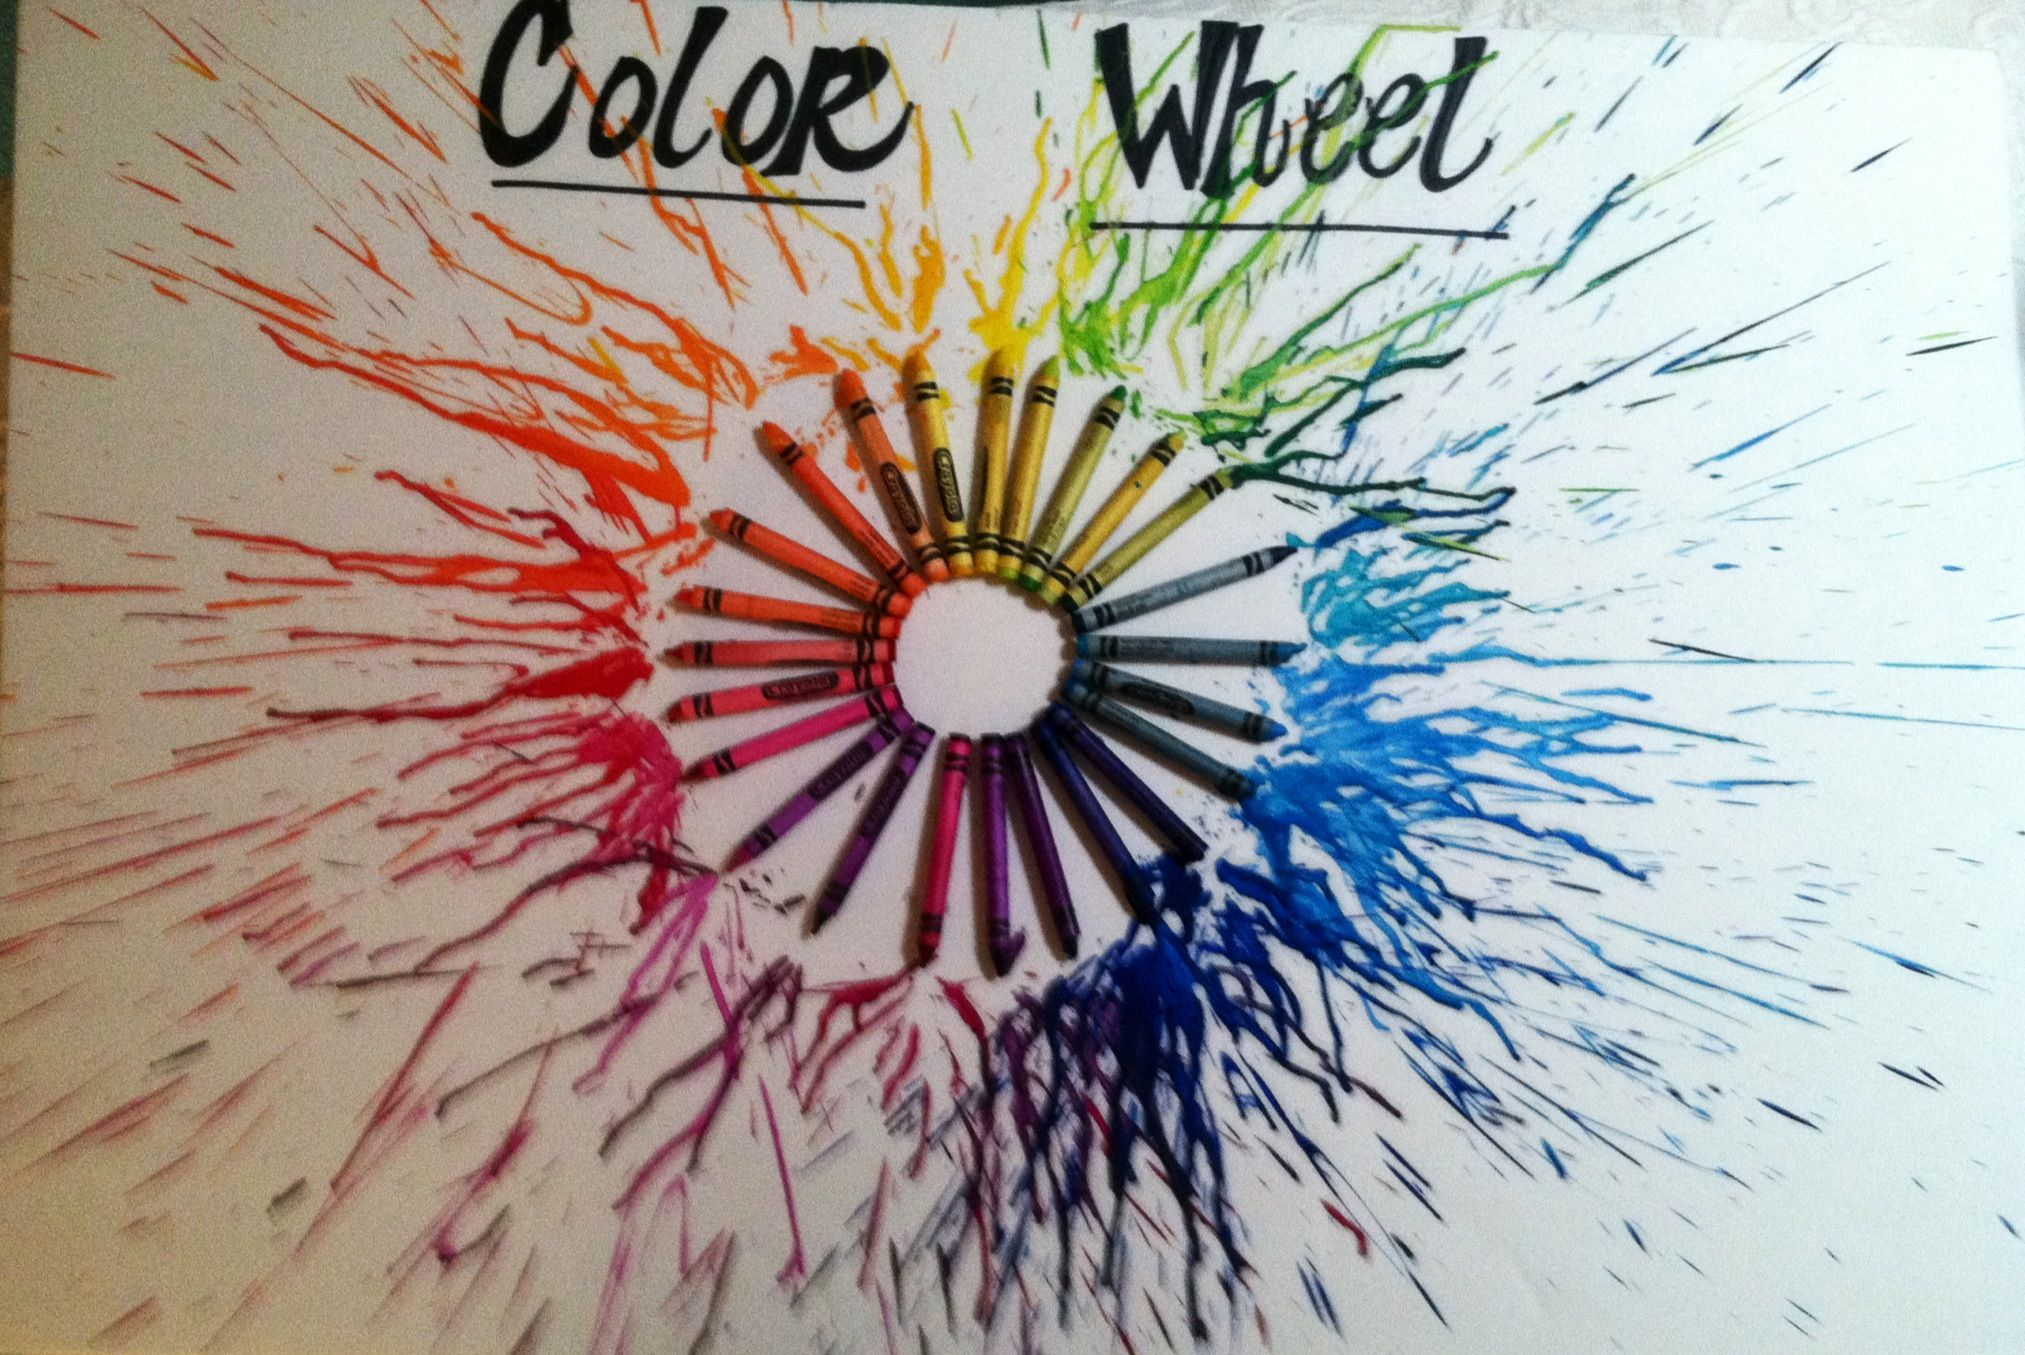 Color Wheel For Cosmetology School Classroom Cosmetology Hair